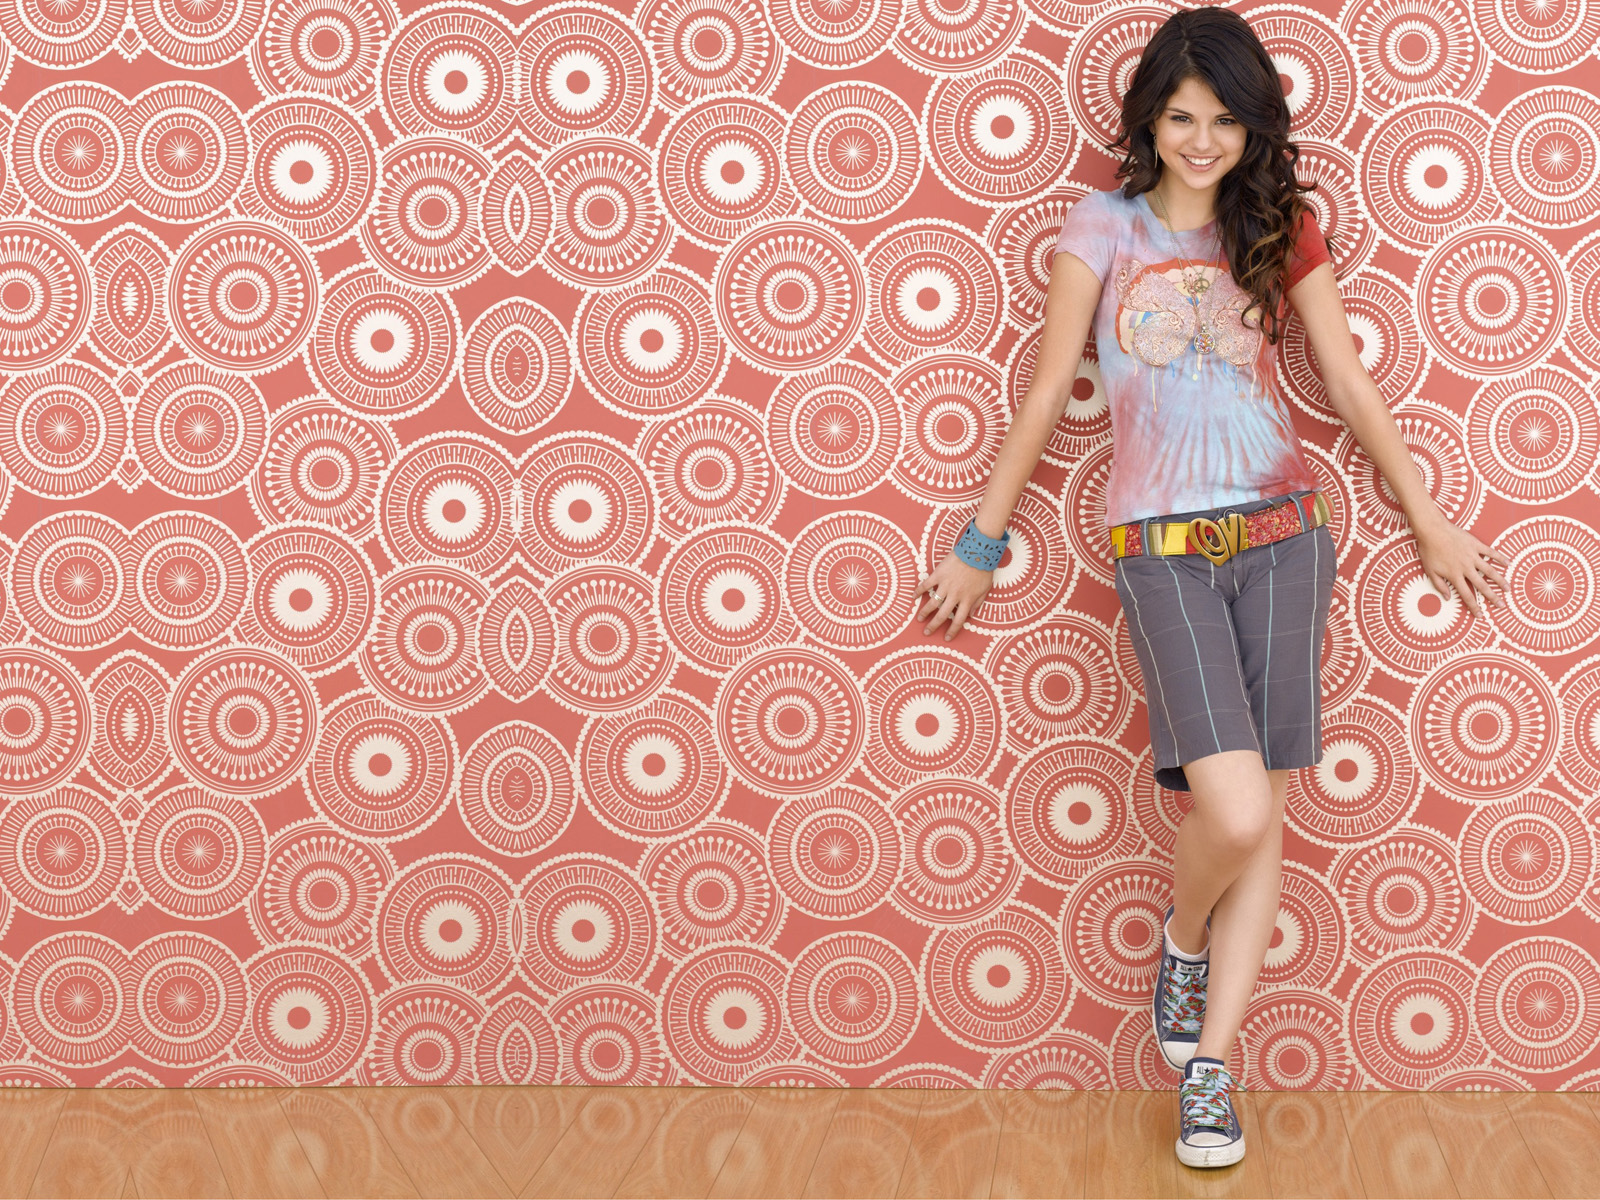 http://3.bp.blogspot.com/-SR1R4pjQD30/Tfs9R1_kBEI/AAAAAAAACi0/RevsUv1AUwQ/s1600/The-best-top-desktop-selena-gomez-wallpapers-selena-gomez-wallpaper-hd-1.jpg